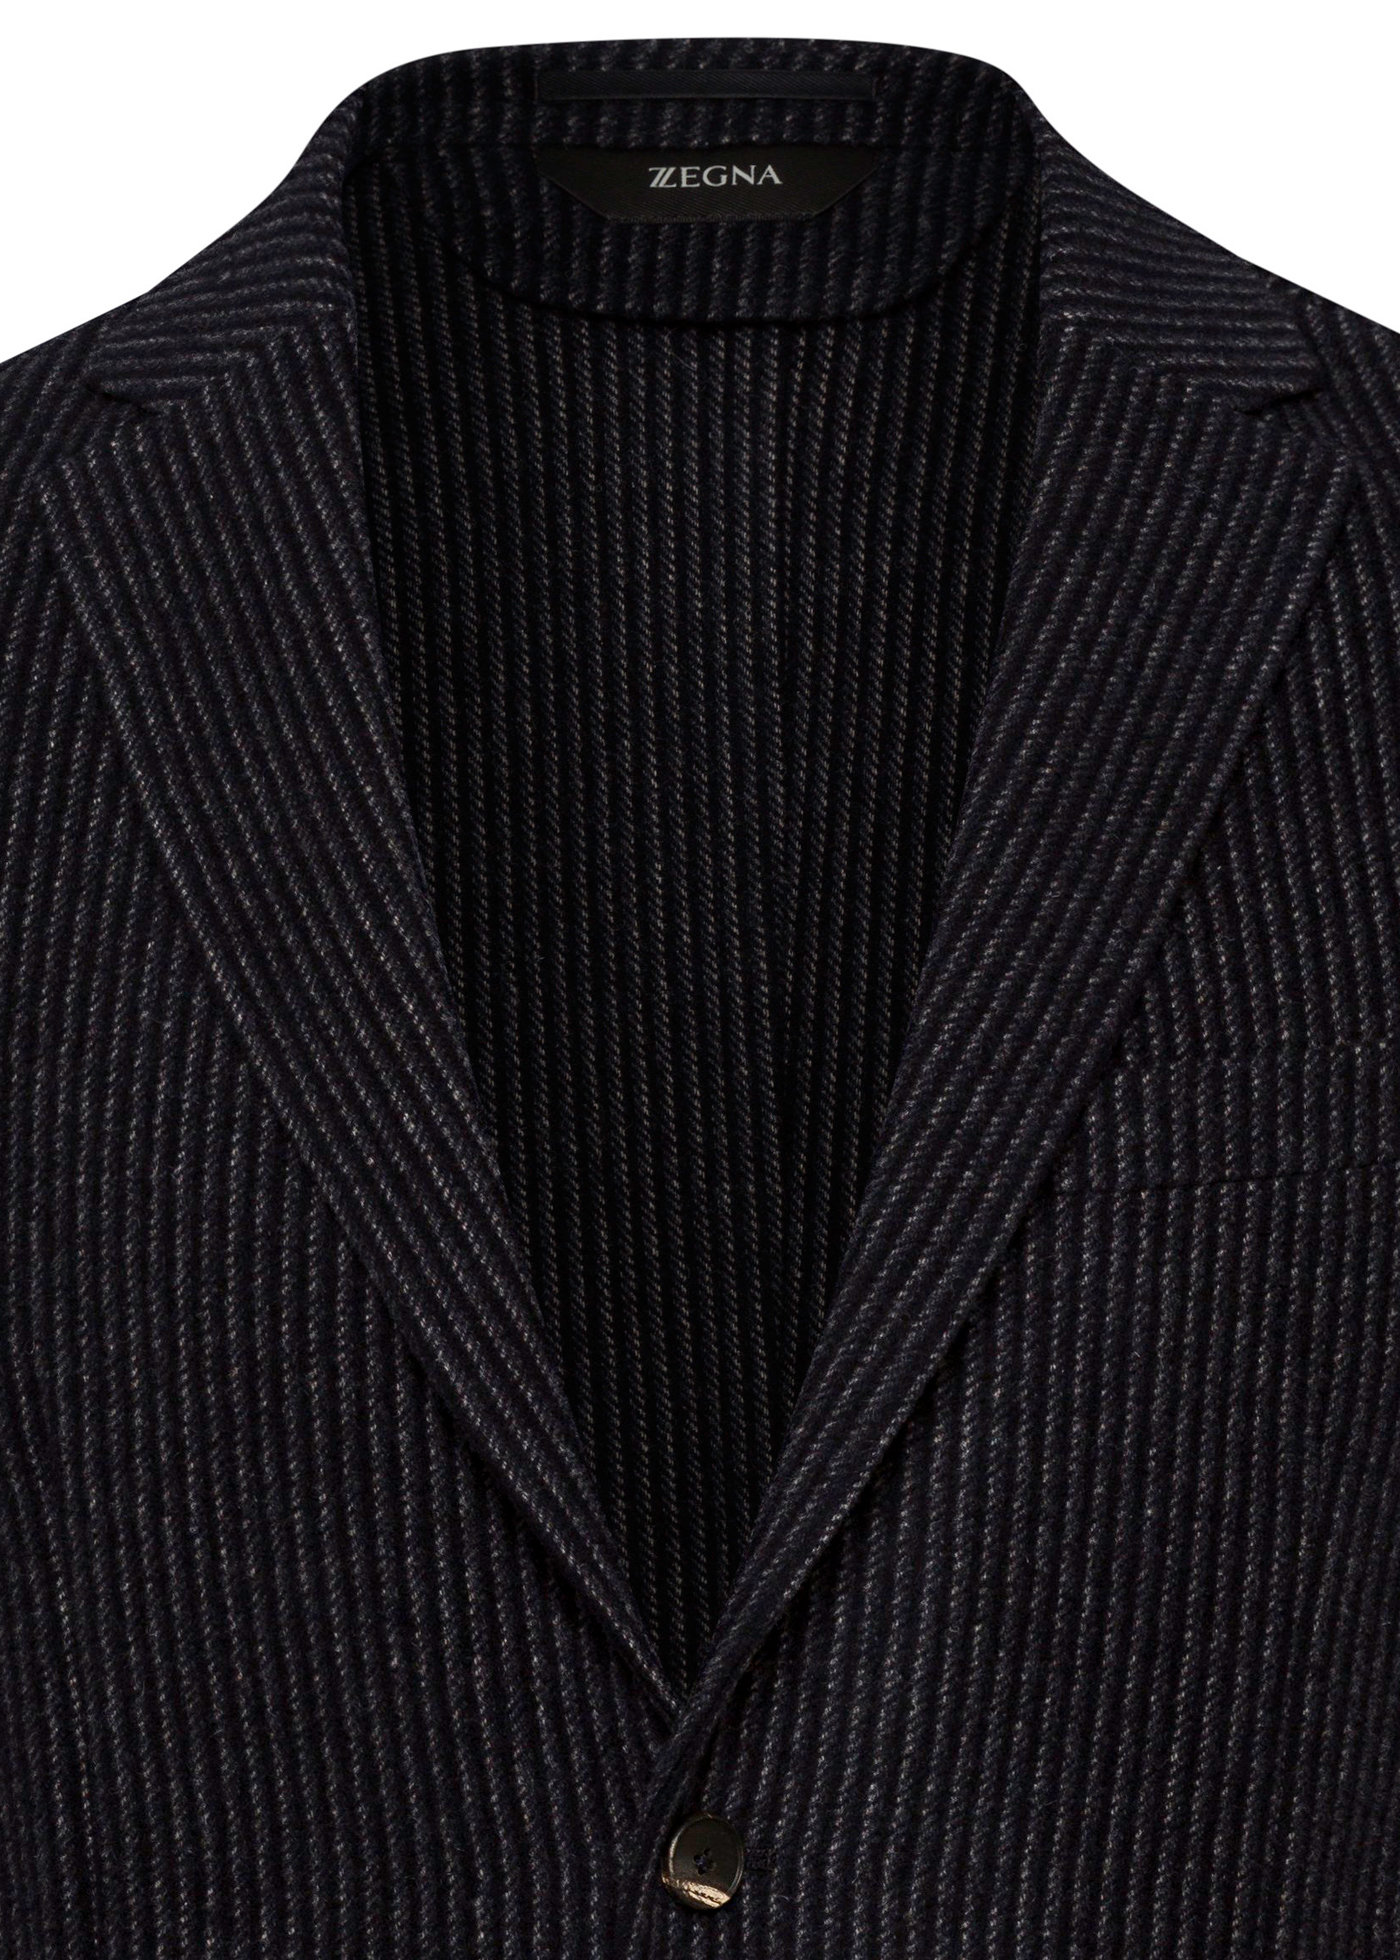 RECYCLED WOOL BLEND JACKET image number 2